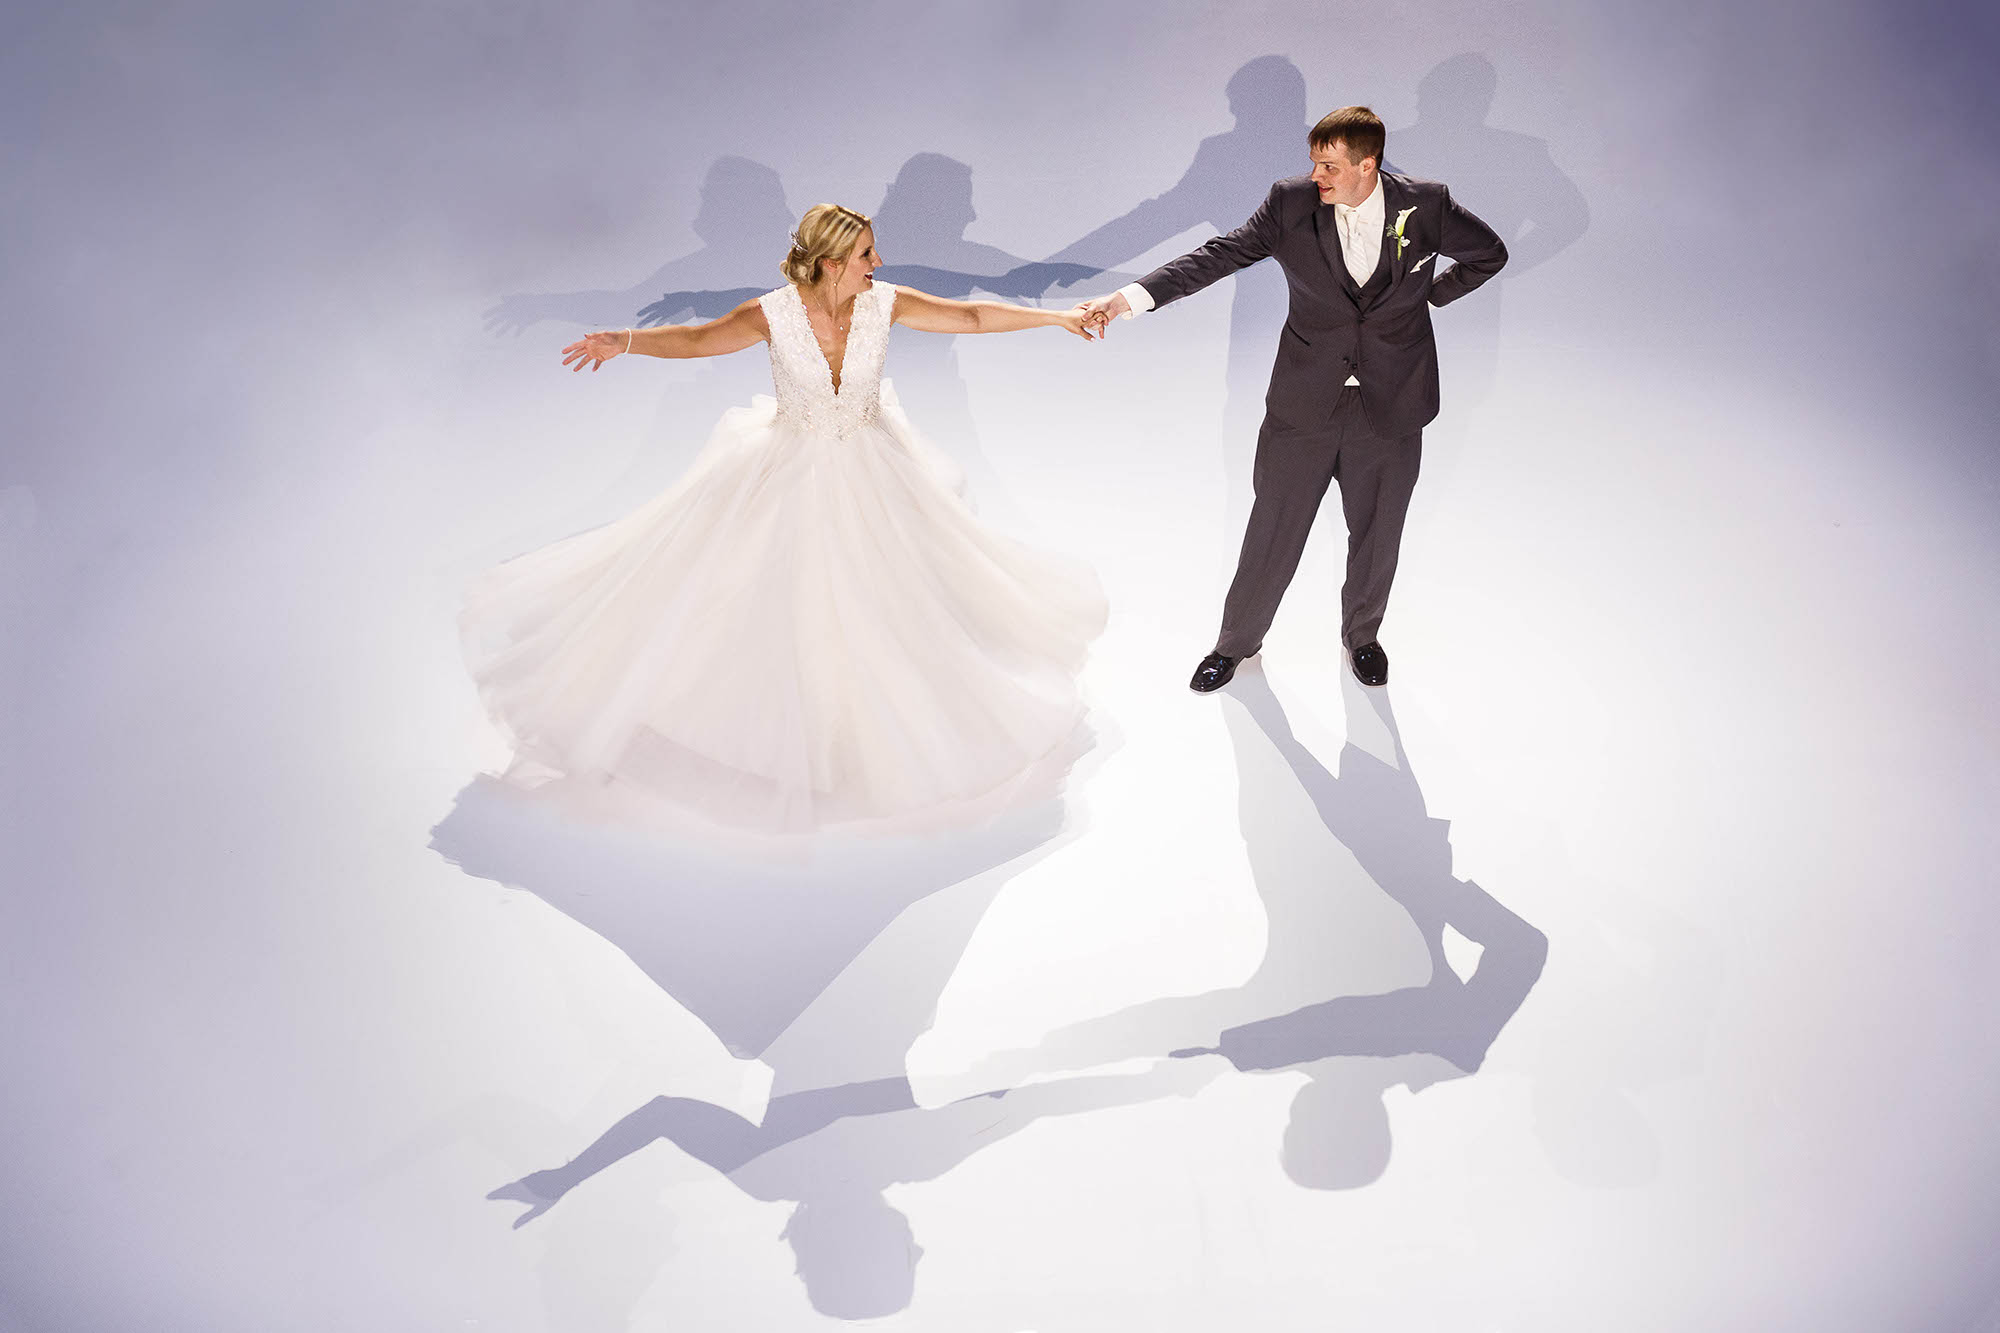 A bride and groom share their first dance on a special white dance floor brought into the Old Courthouse in Downtown Cleveland, Ohio especially for the reception.